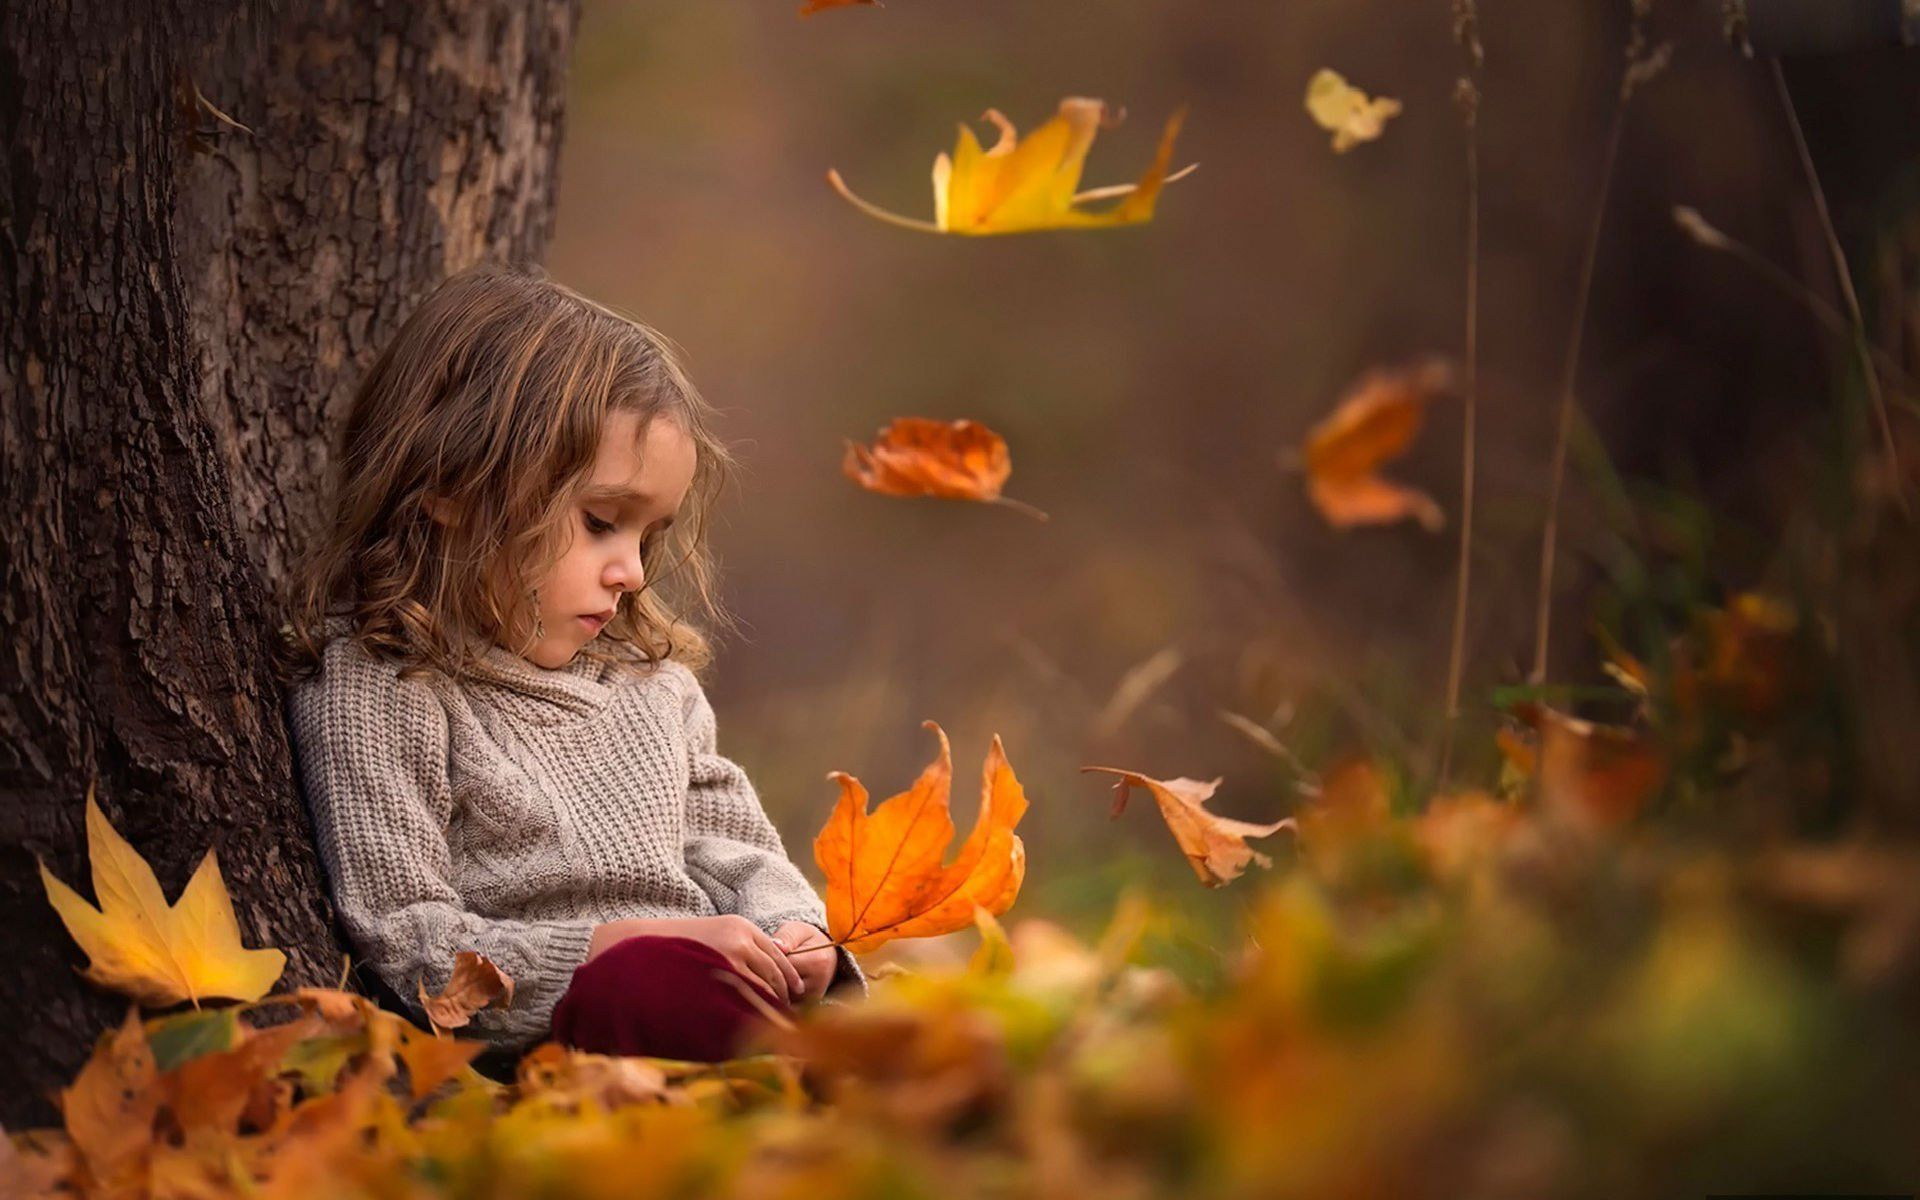 depression, Sad, Mood, Sorrow, Dark, People, Love, Autumn, Baby Wallpapers HD / Desktop and Mobile Backgrounds